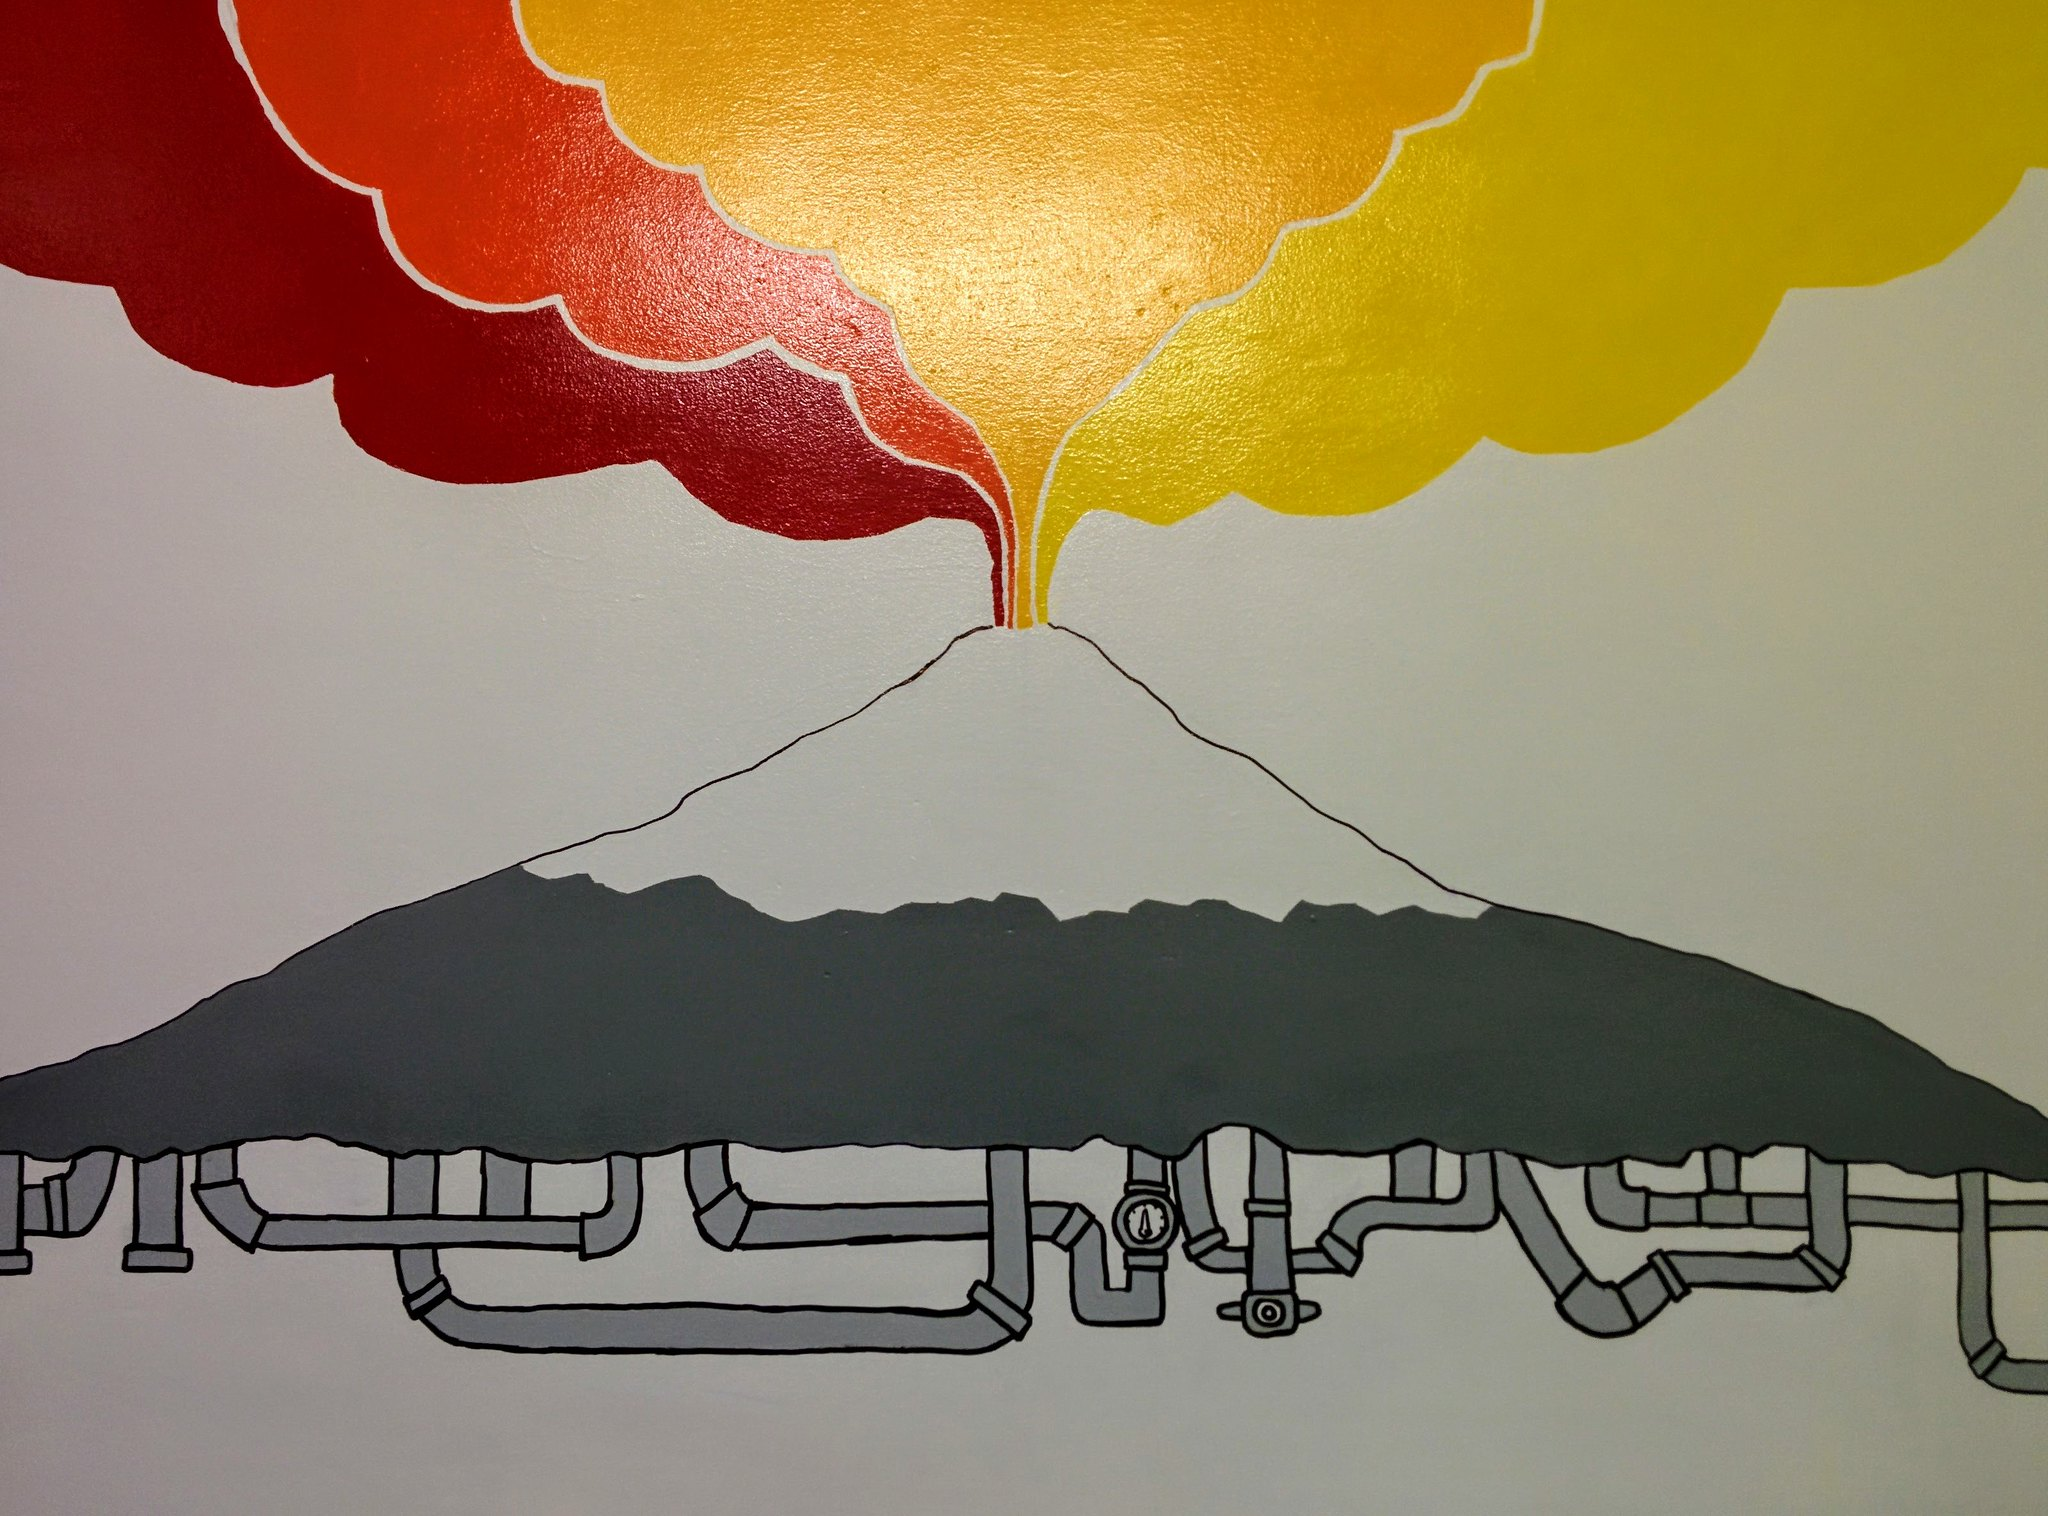 Painting of Volcán Villarrica in the Chili Kiwi hostel (art by Che Kumar)